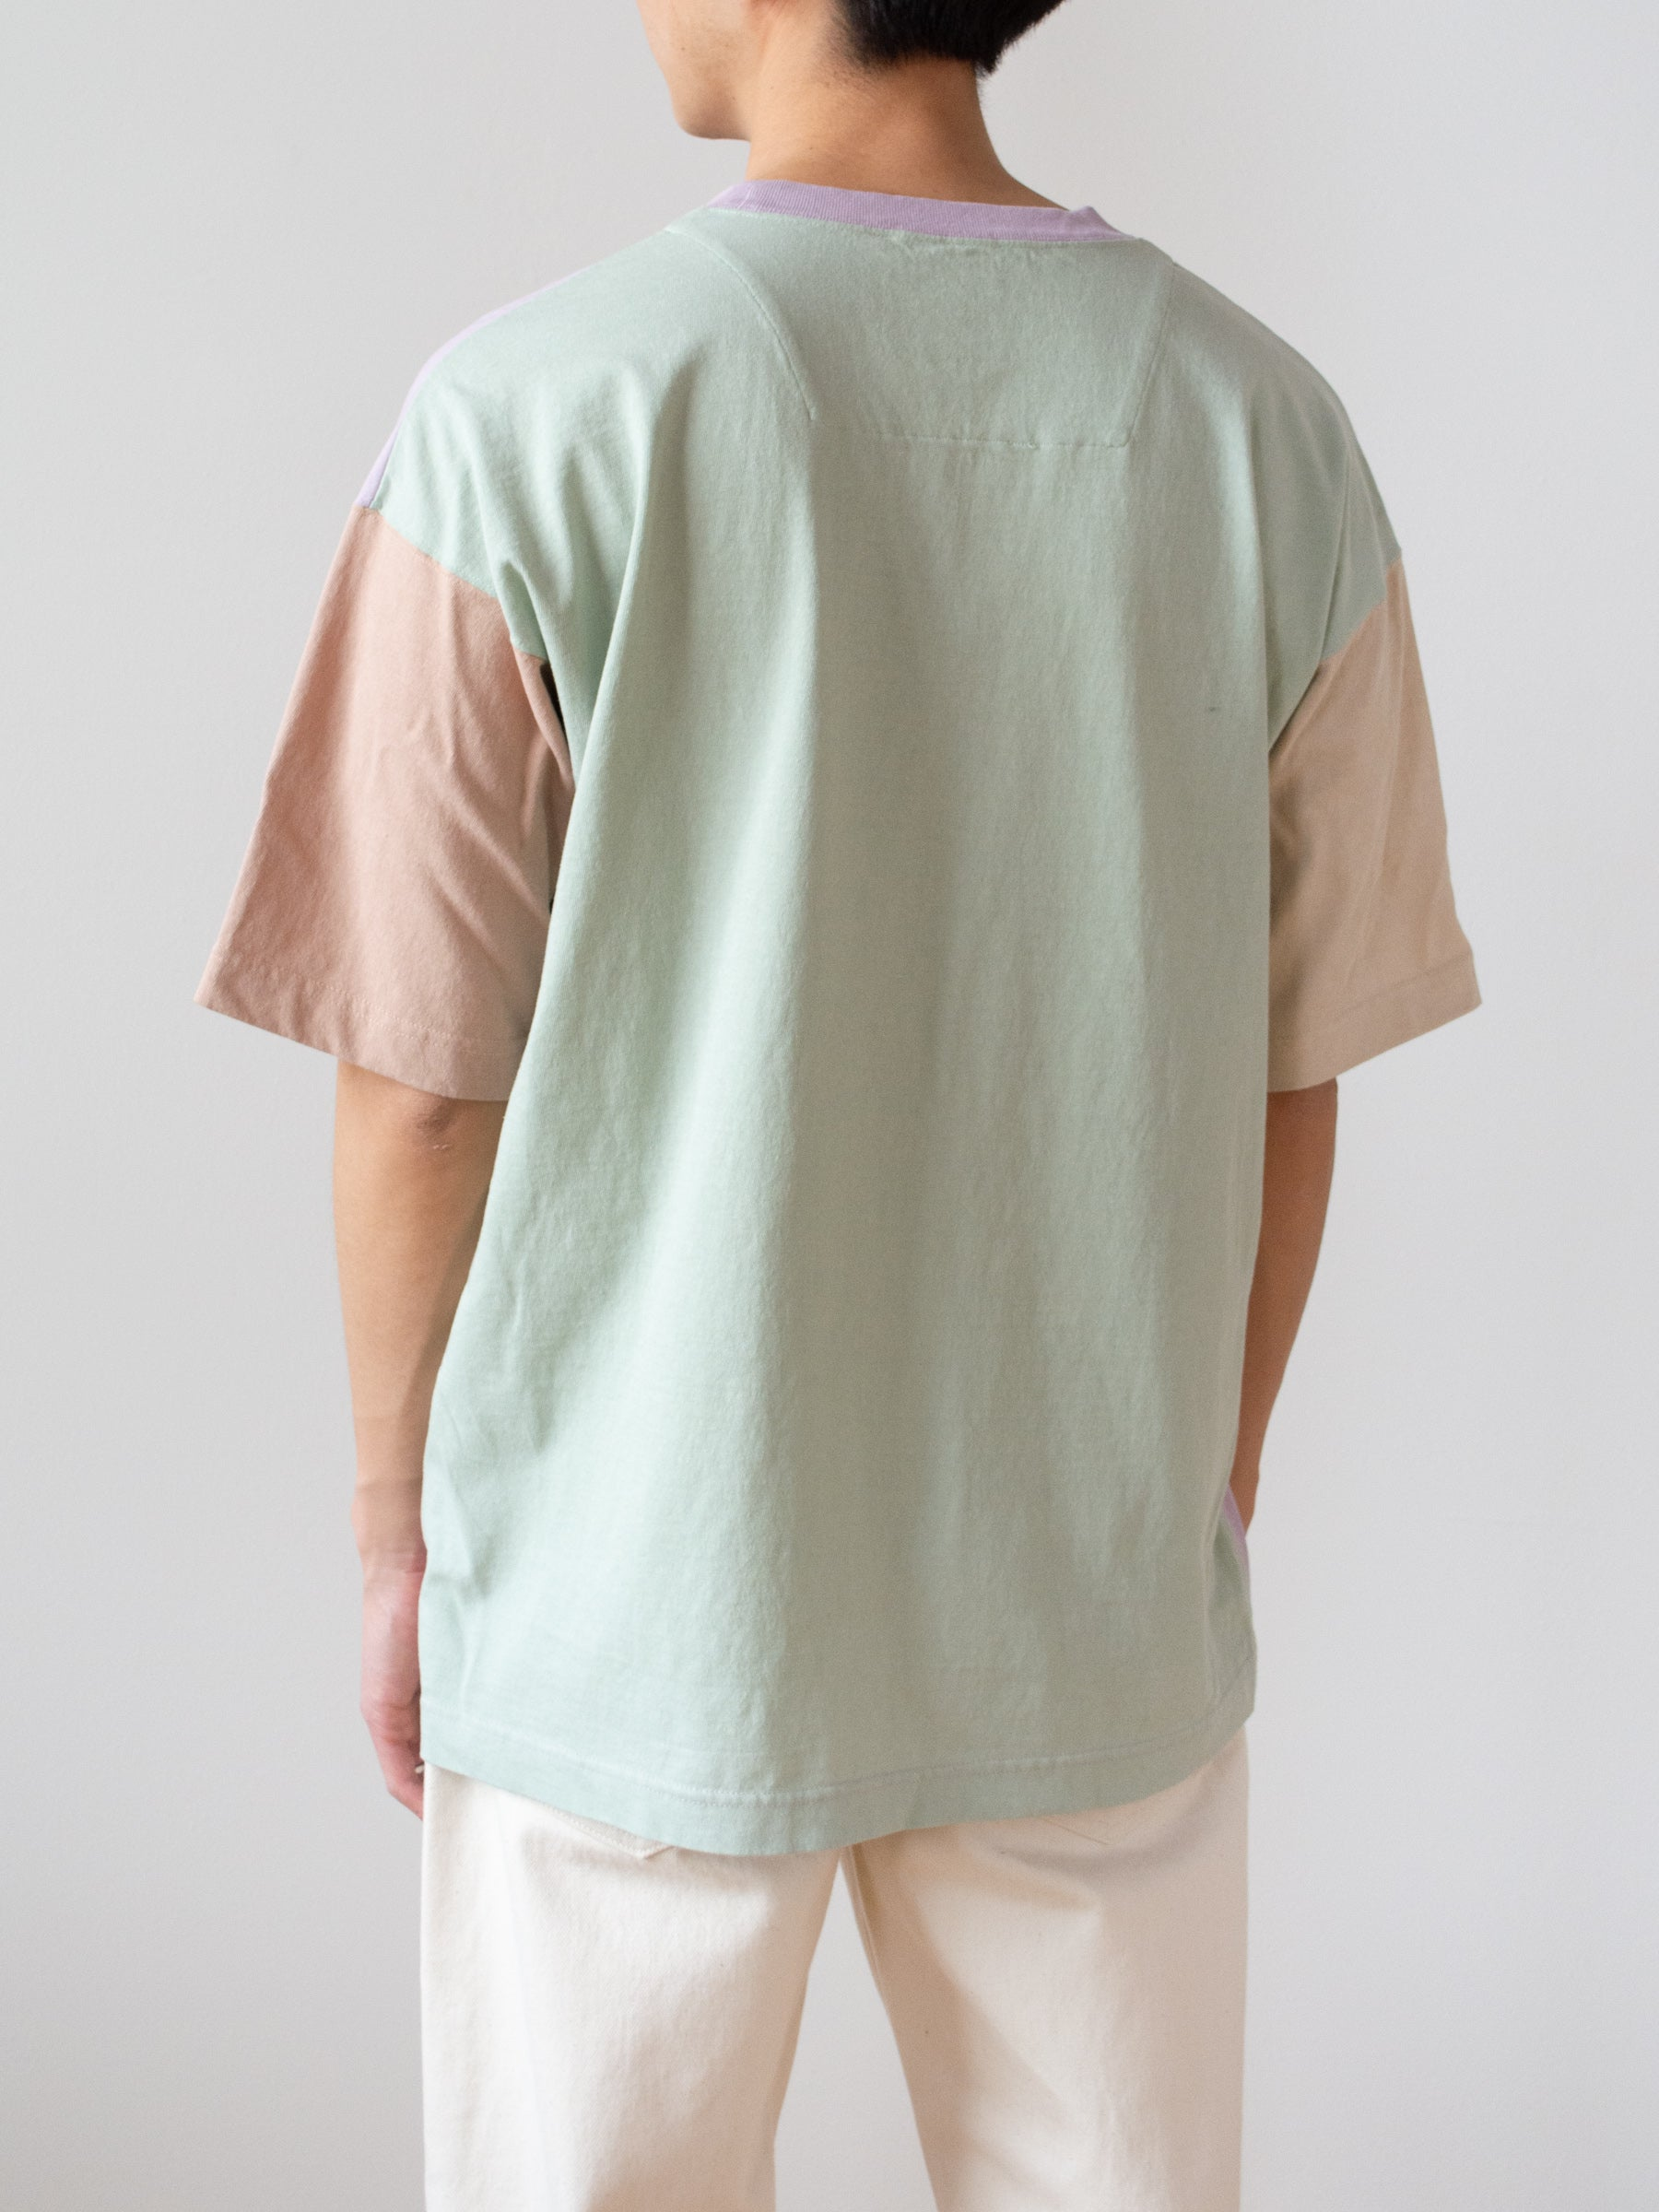 Color Panel Oversized Dry Touch T-Shirt - Lavender